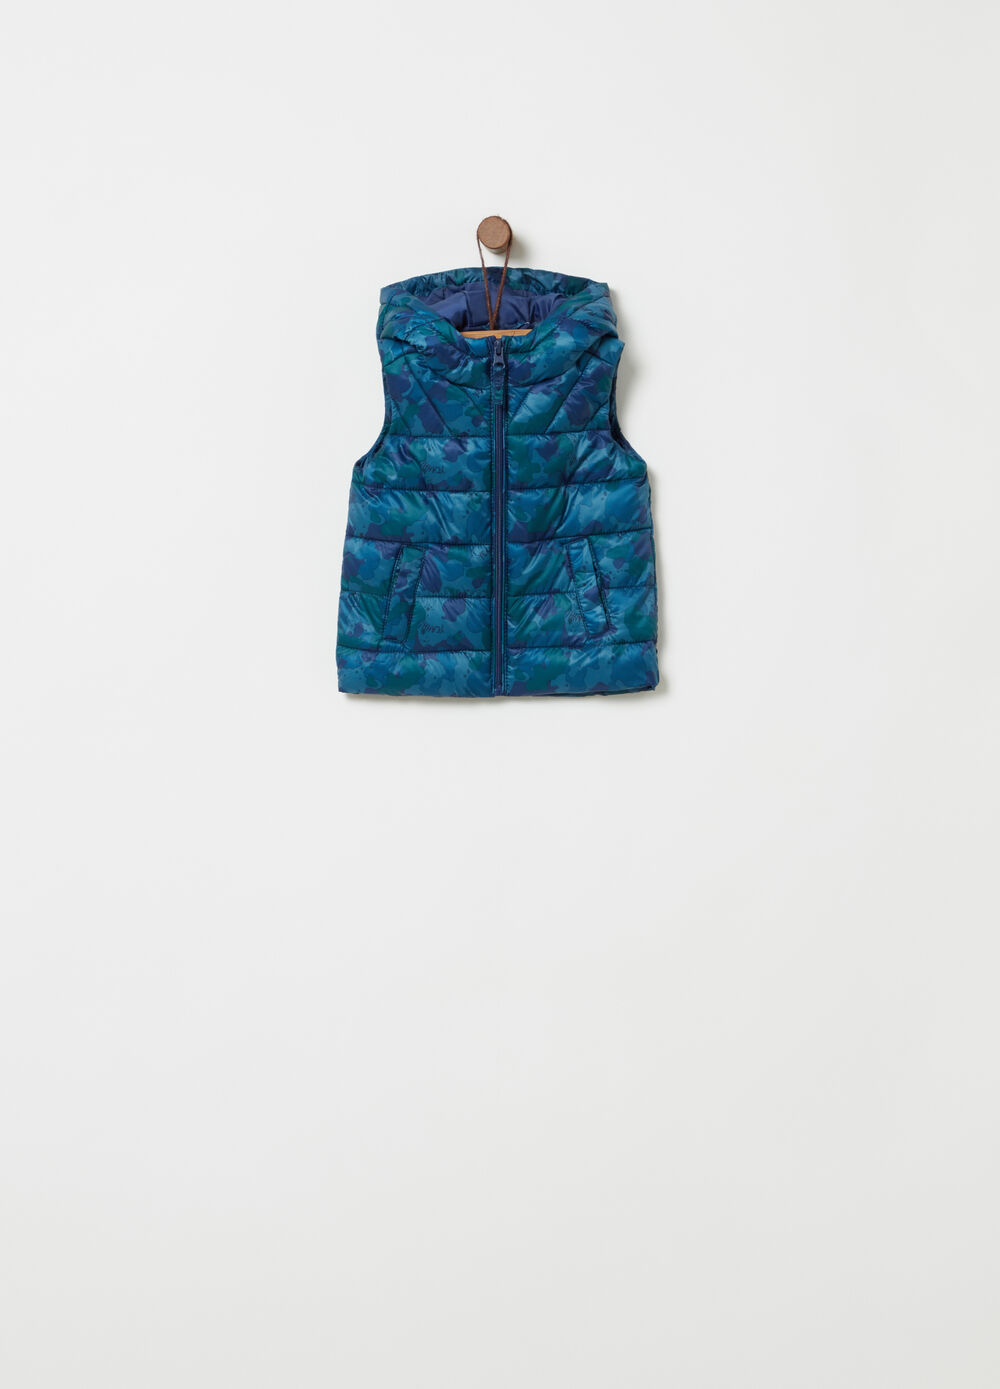 Quilted gilet with camouflage pattern